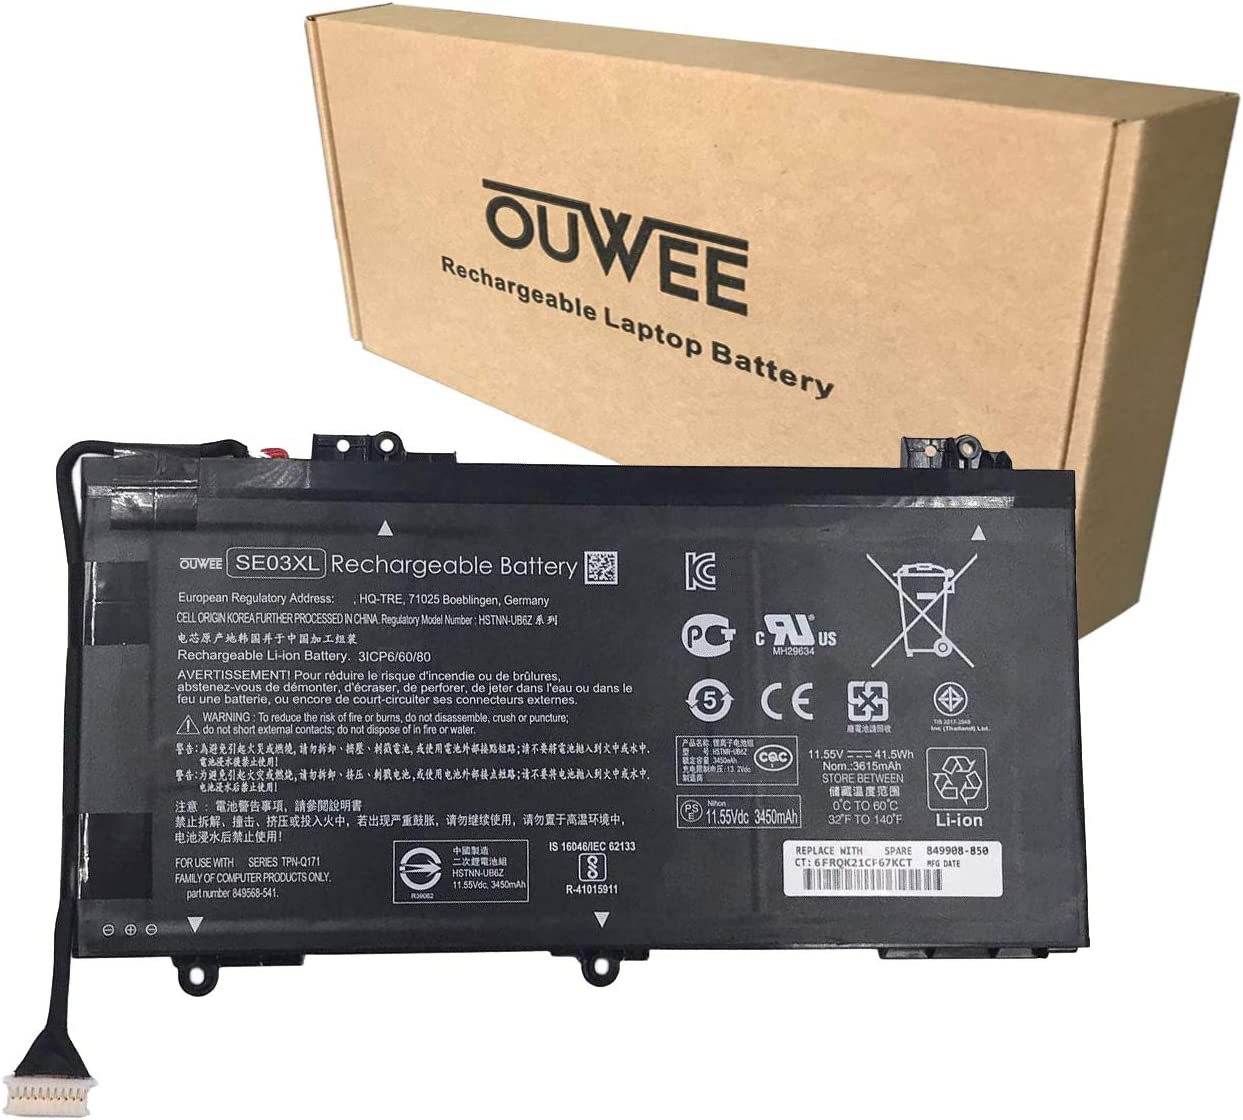 OUWEE SE03XL Laptop Battery Compatible with HP Pavilion 14 14-AL000 14-AL125TX 14-AL136TX Series SE03041XL HSTNN-LB7G HSTNN-UB6Z TPN-Q171 849568-421 849568-541 849908-850 11.55V 41.5Wh 3615mAh